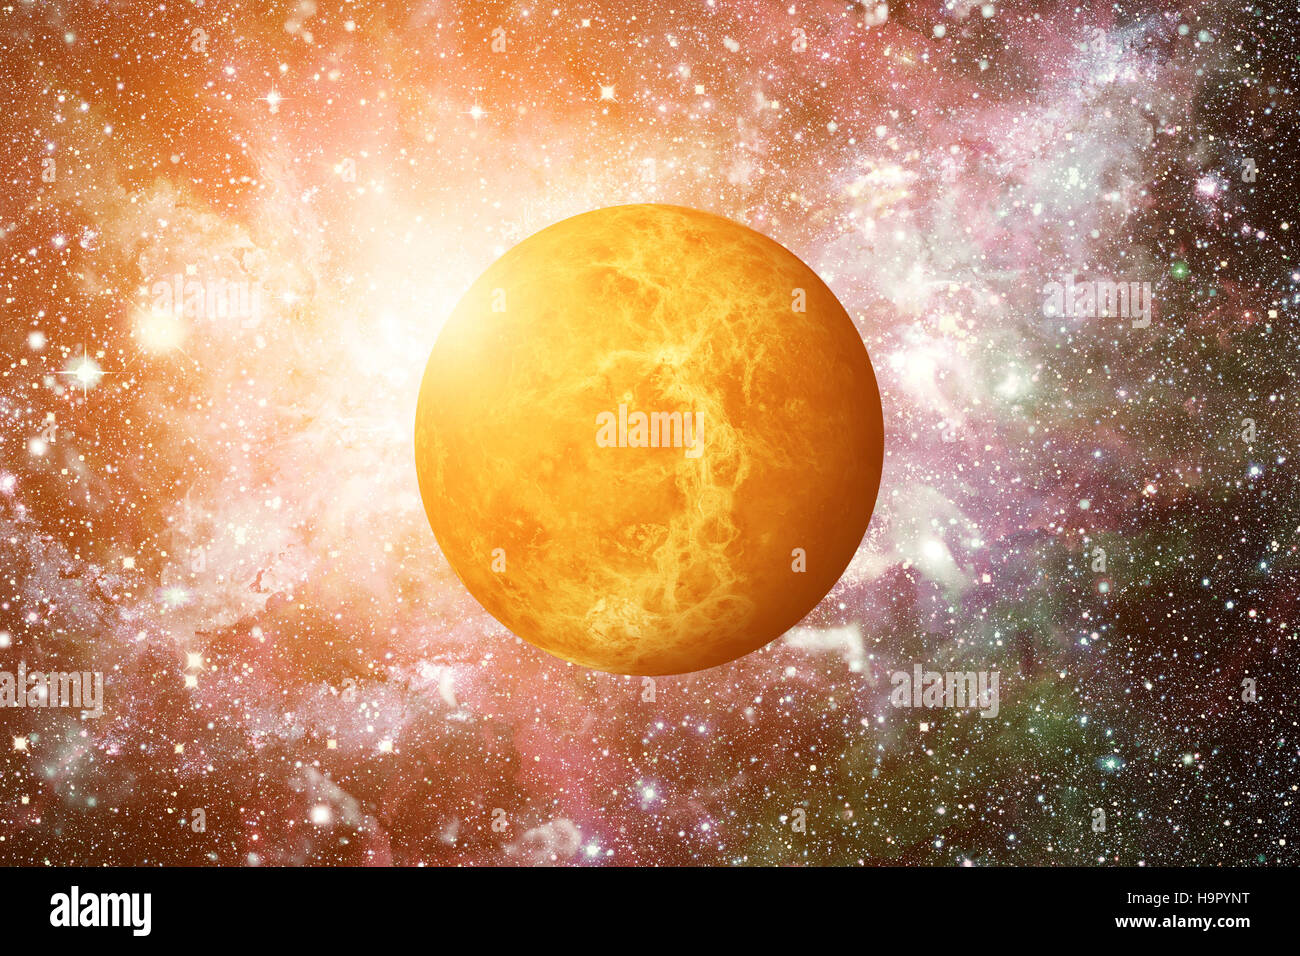 Planet Venus. Elements of this image furnished by NASA. - Stock Image